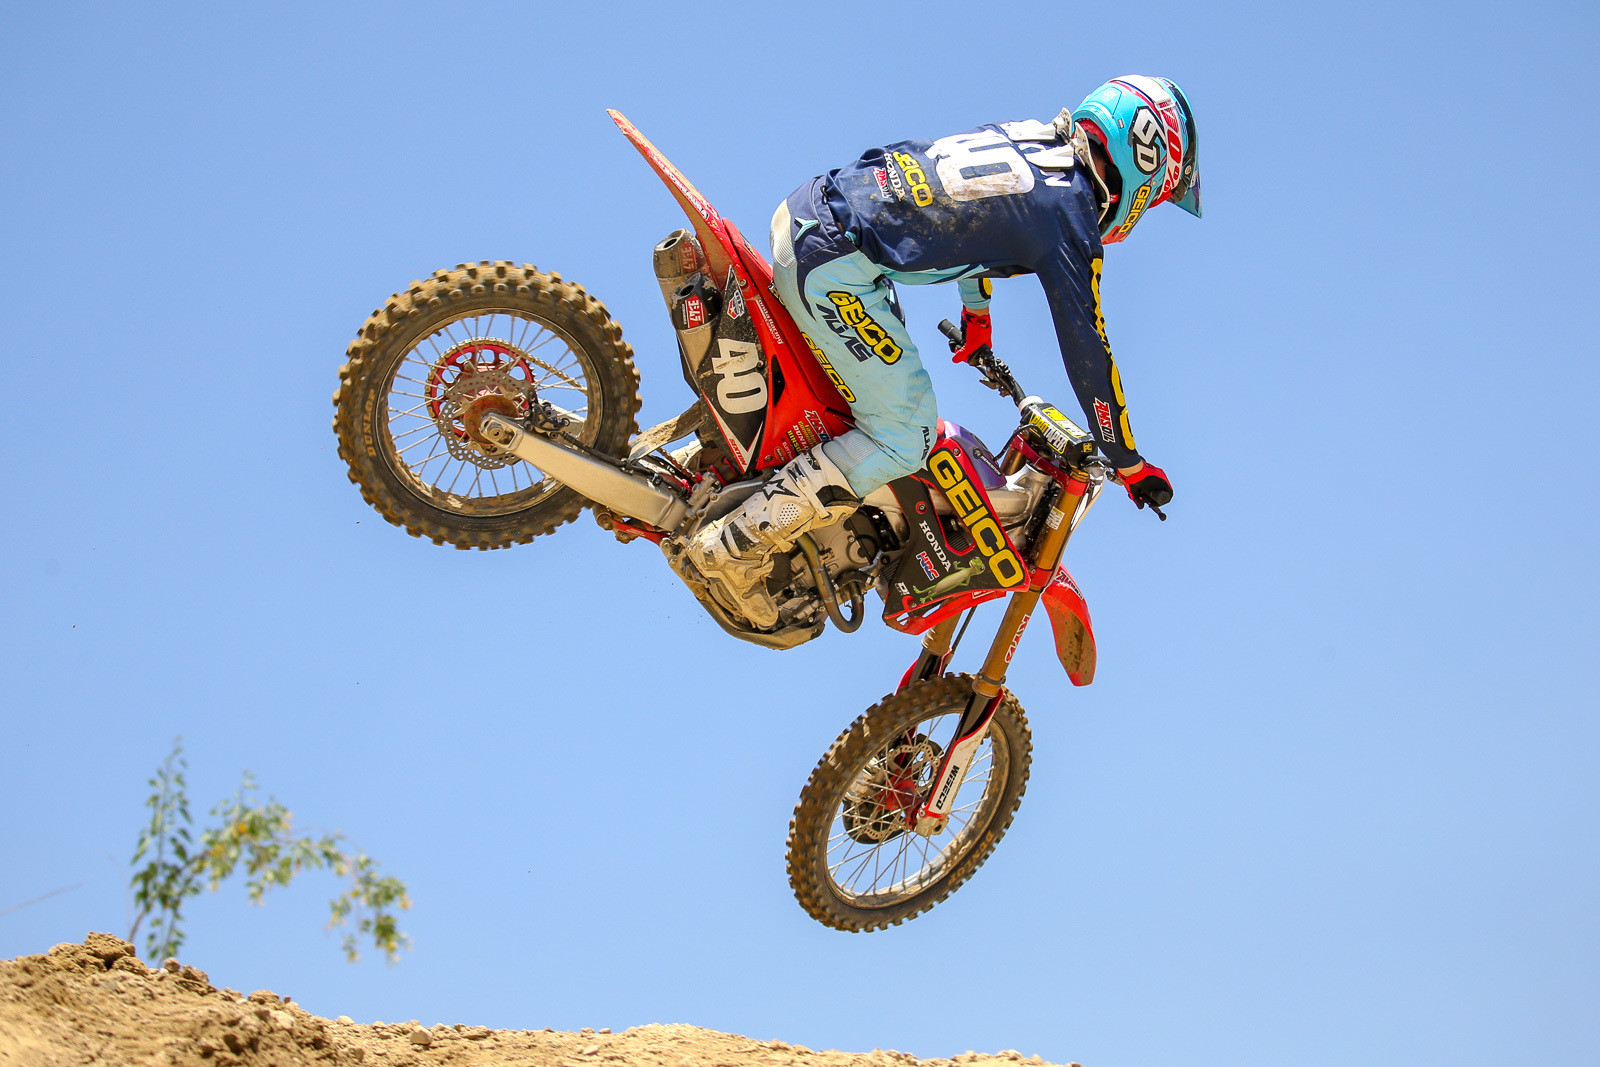 Chase Sexton and the rest of the GEICO Honda crew will be in Shift gear all summer.